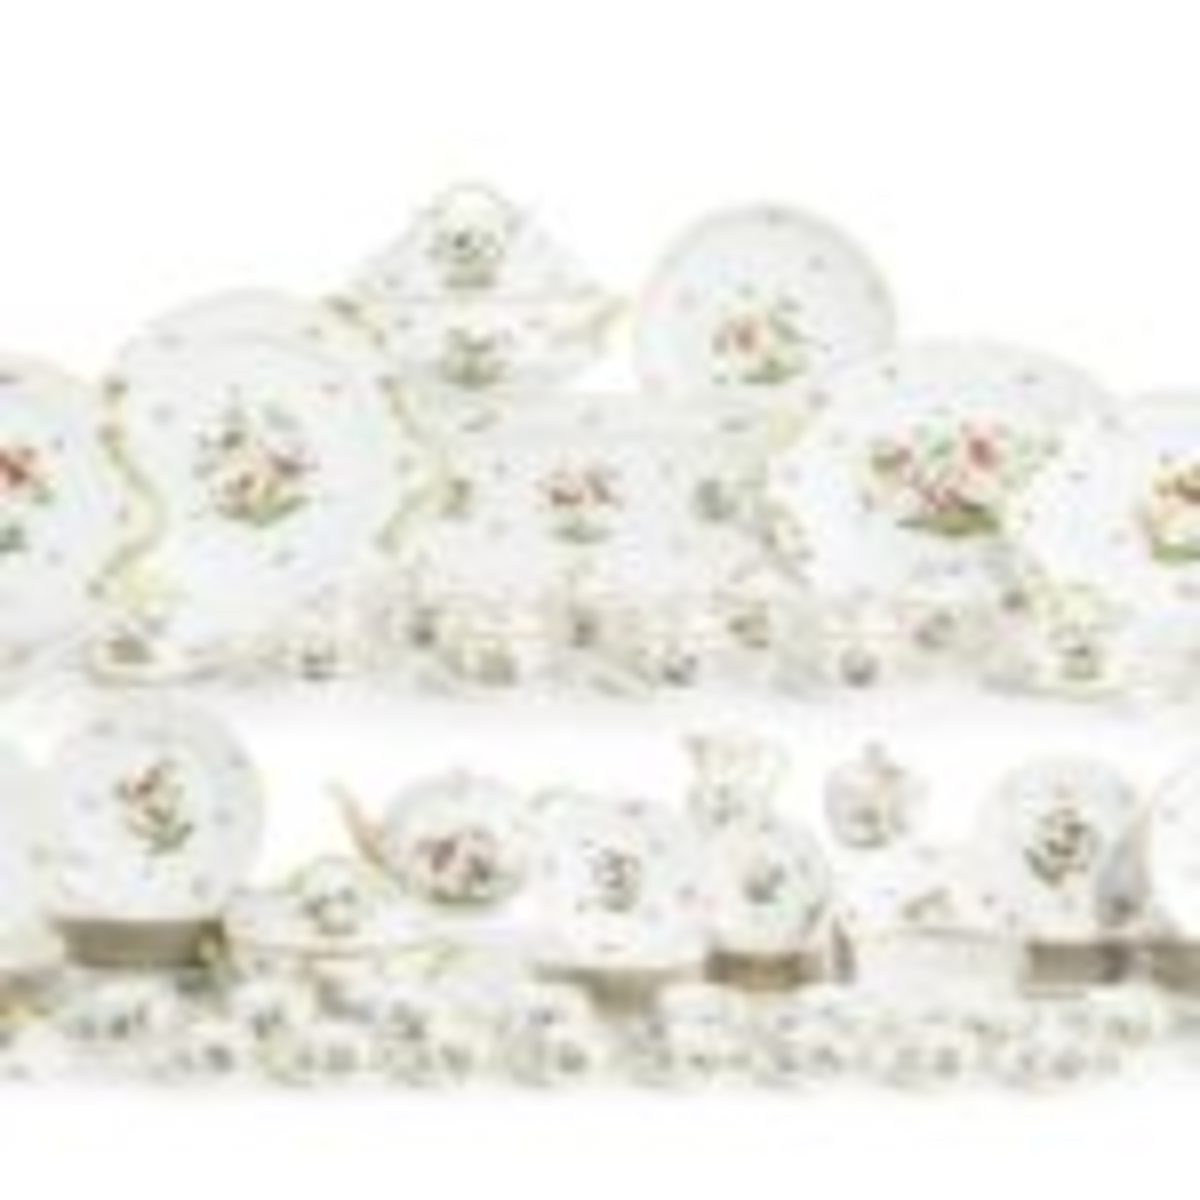 An extensive 43-lot Herend dinner service in the Rothschild Bird pattern from the collection of Fima Ruchman has estimates ranging from $150-$250 to $1,500-$2,000.